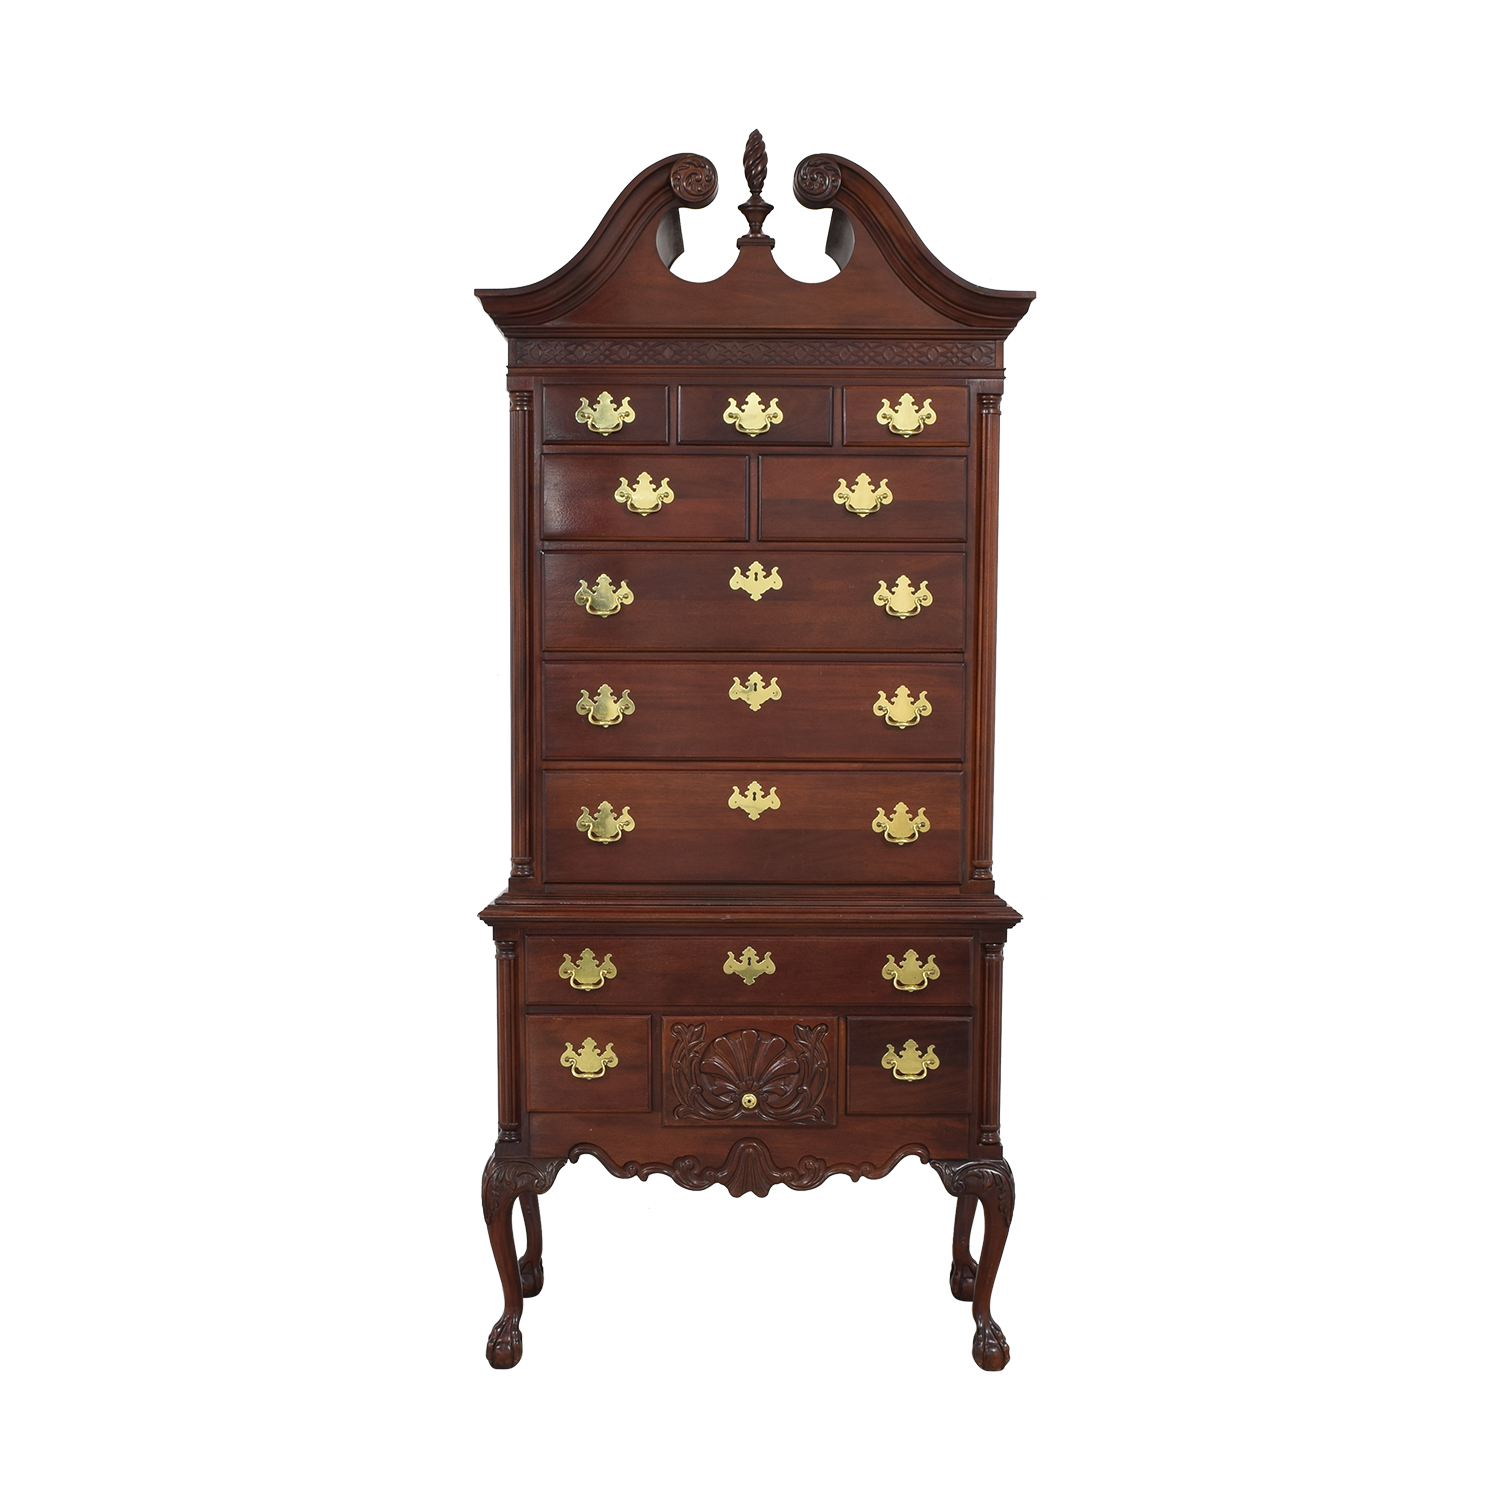 shop Thomasville Thomasville Highboy Dresser online